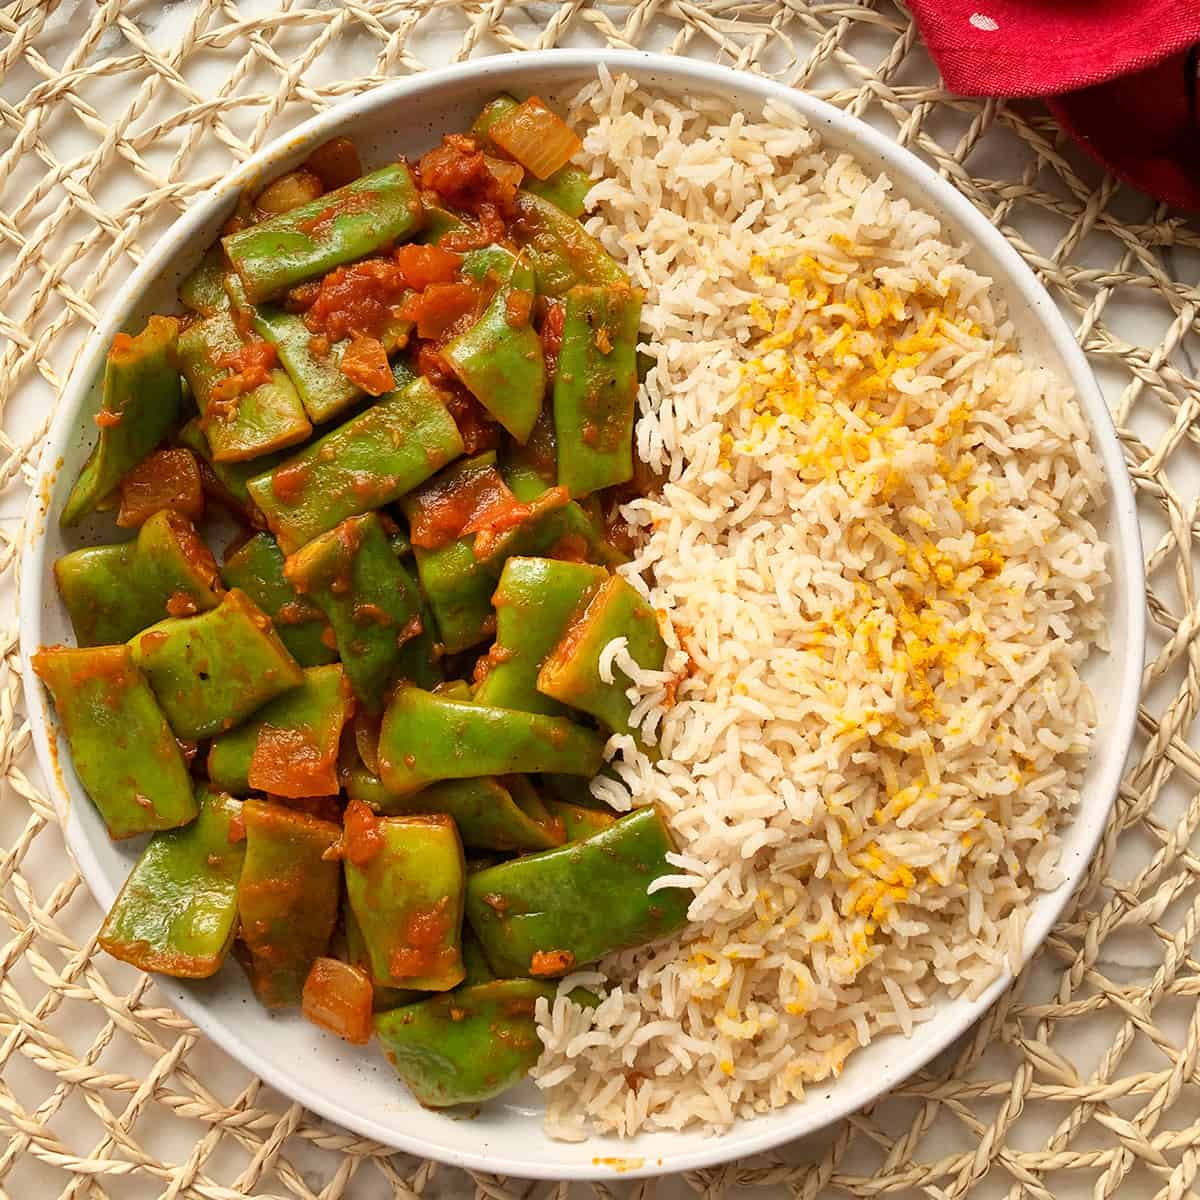 Green Bean Recipe served with basmati rice served on plates